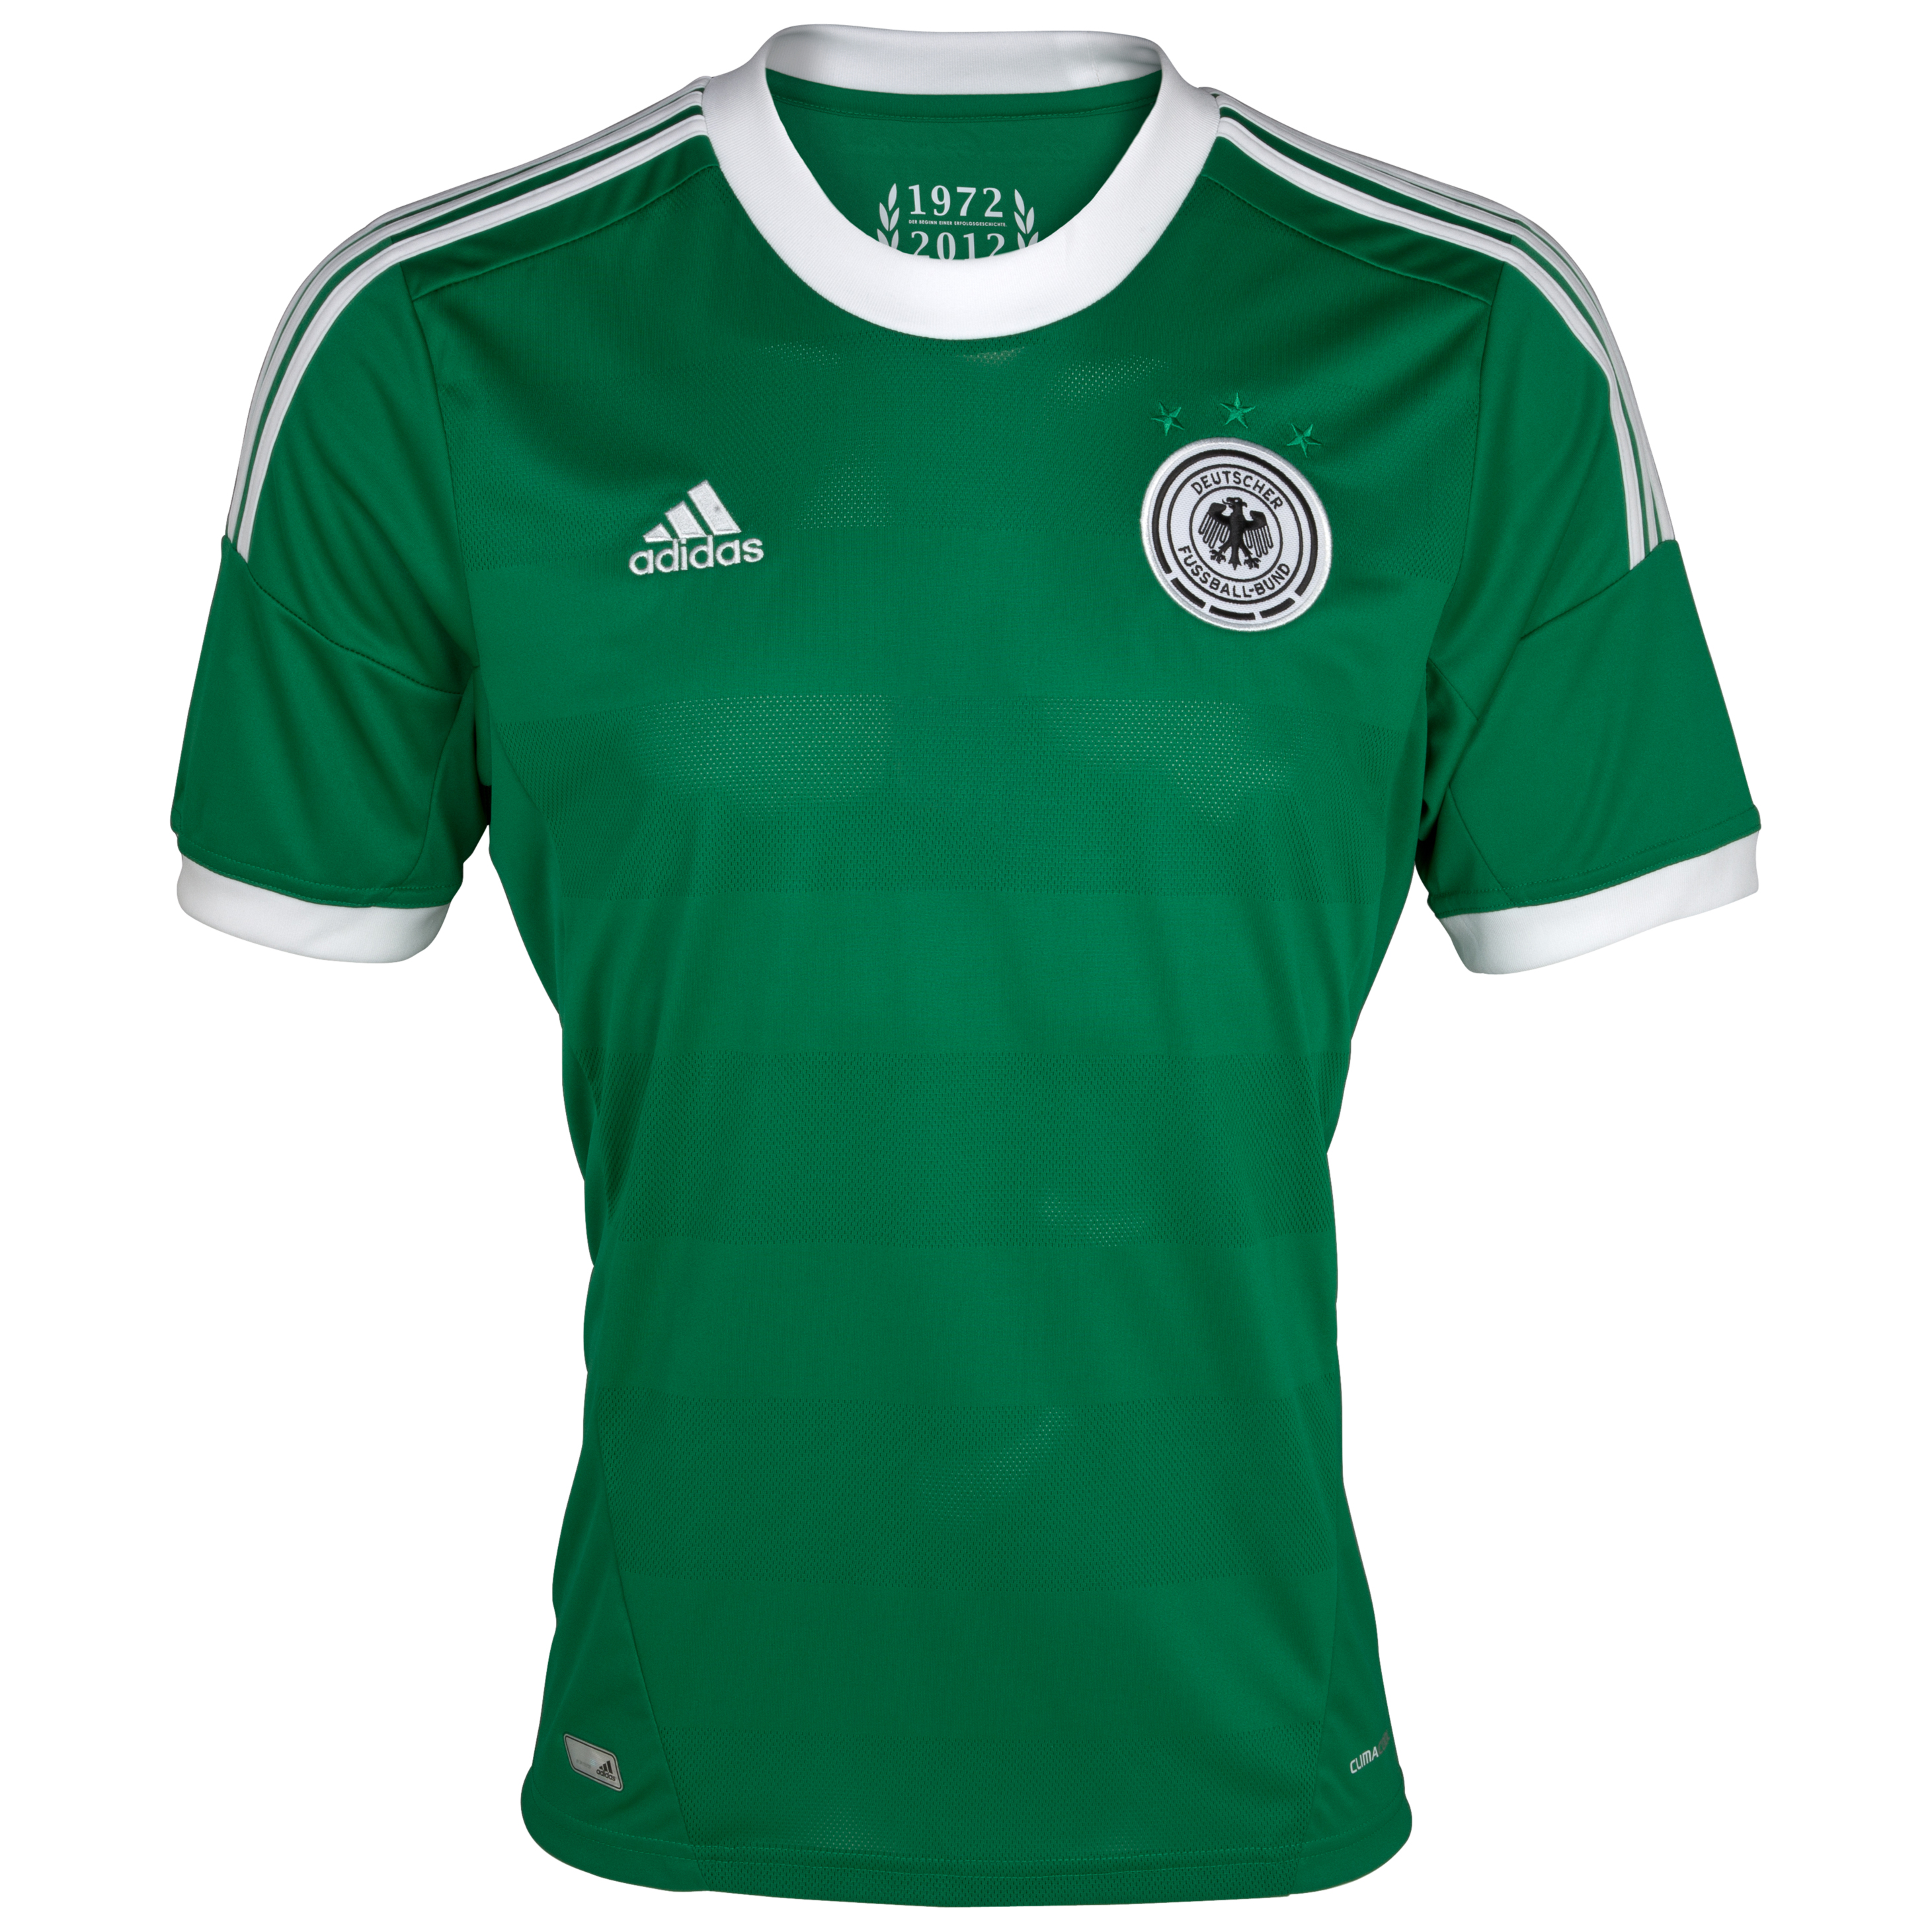 http://images.kitbag.com/kb-98932.jpg?width=400&height=400&quality=95?width=400&height=400&quality=95